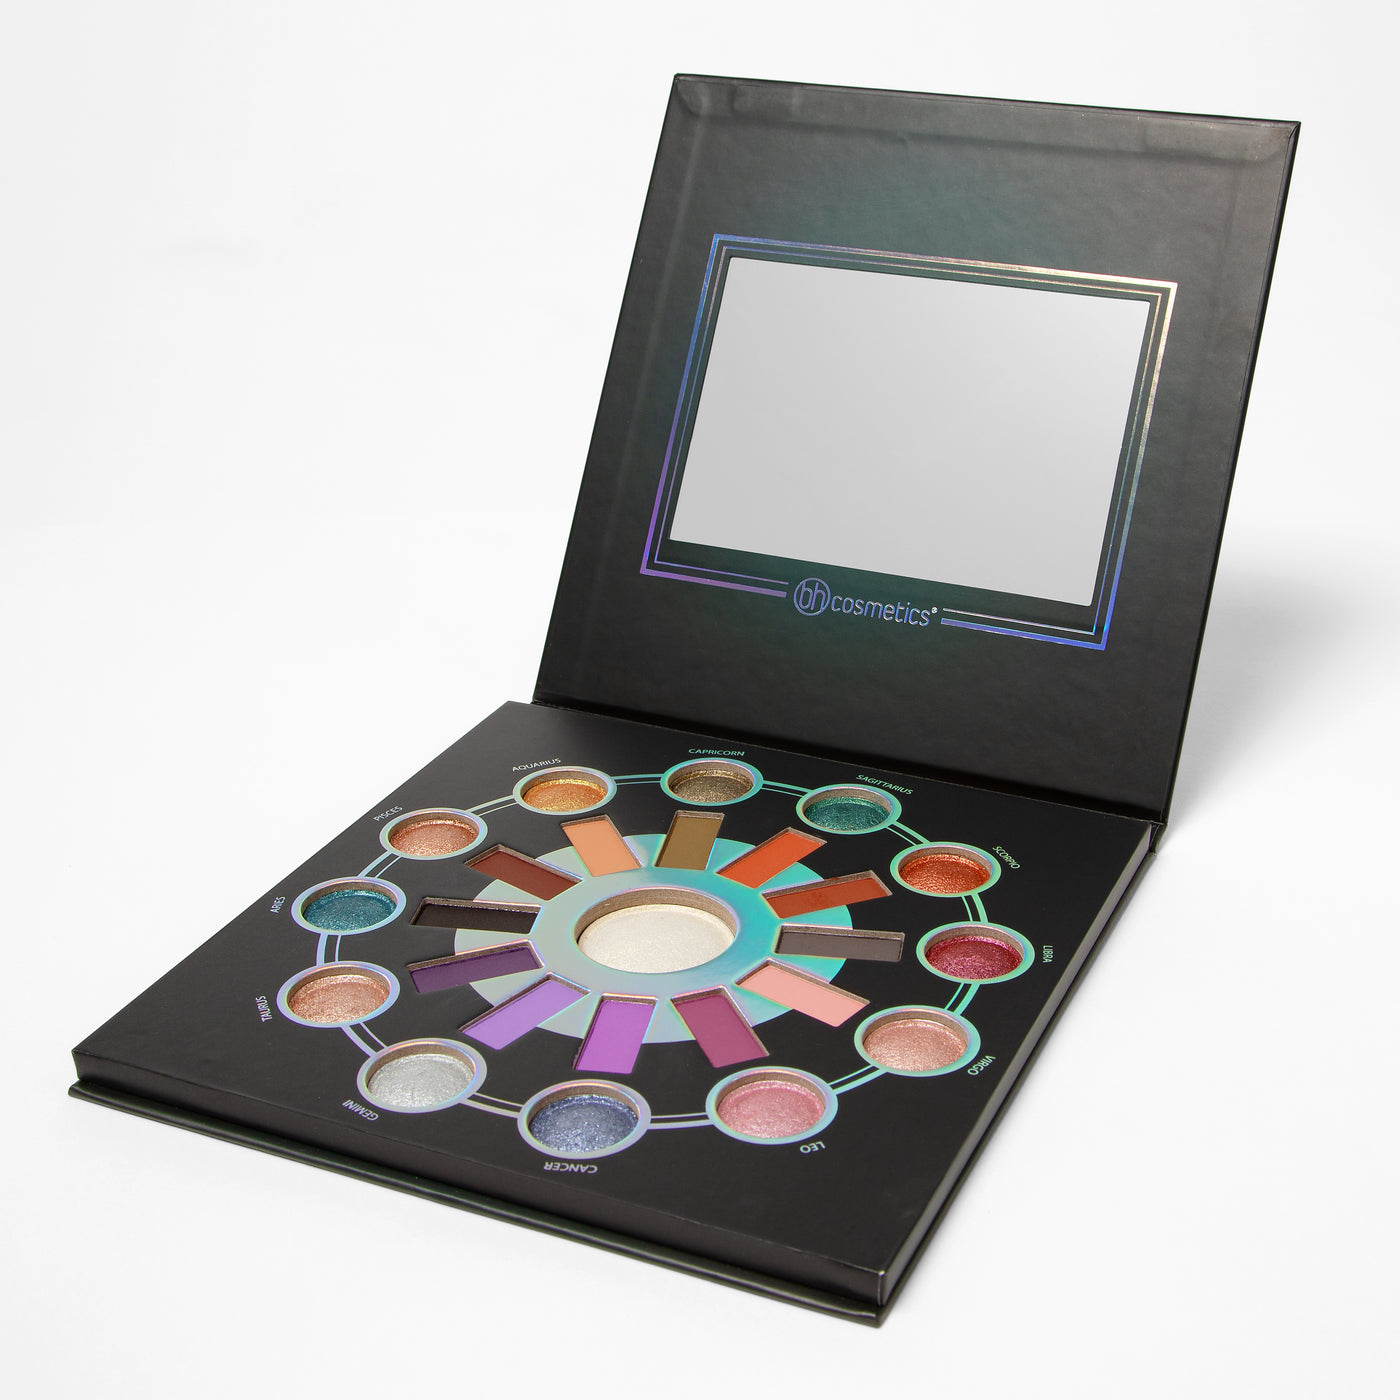 bbbe2fed51ab Zodiac 25 Color Eyeshadow & Highlighter Palette | BH Cosmetics